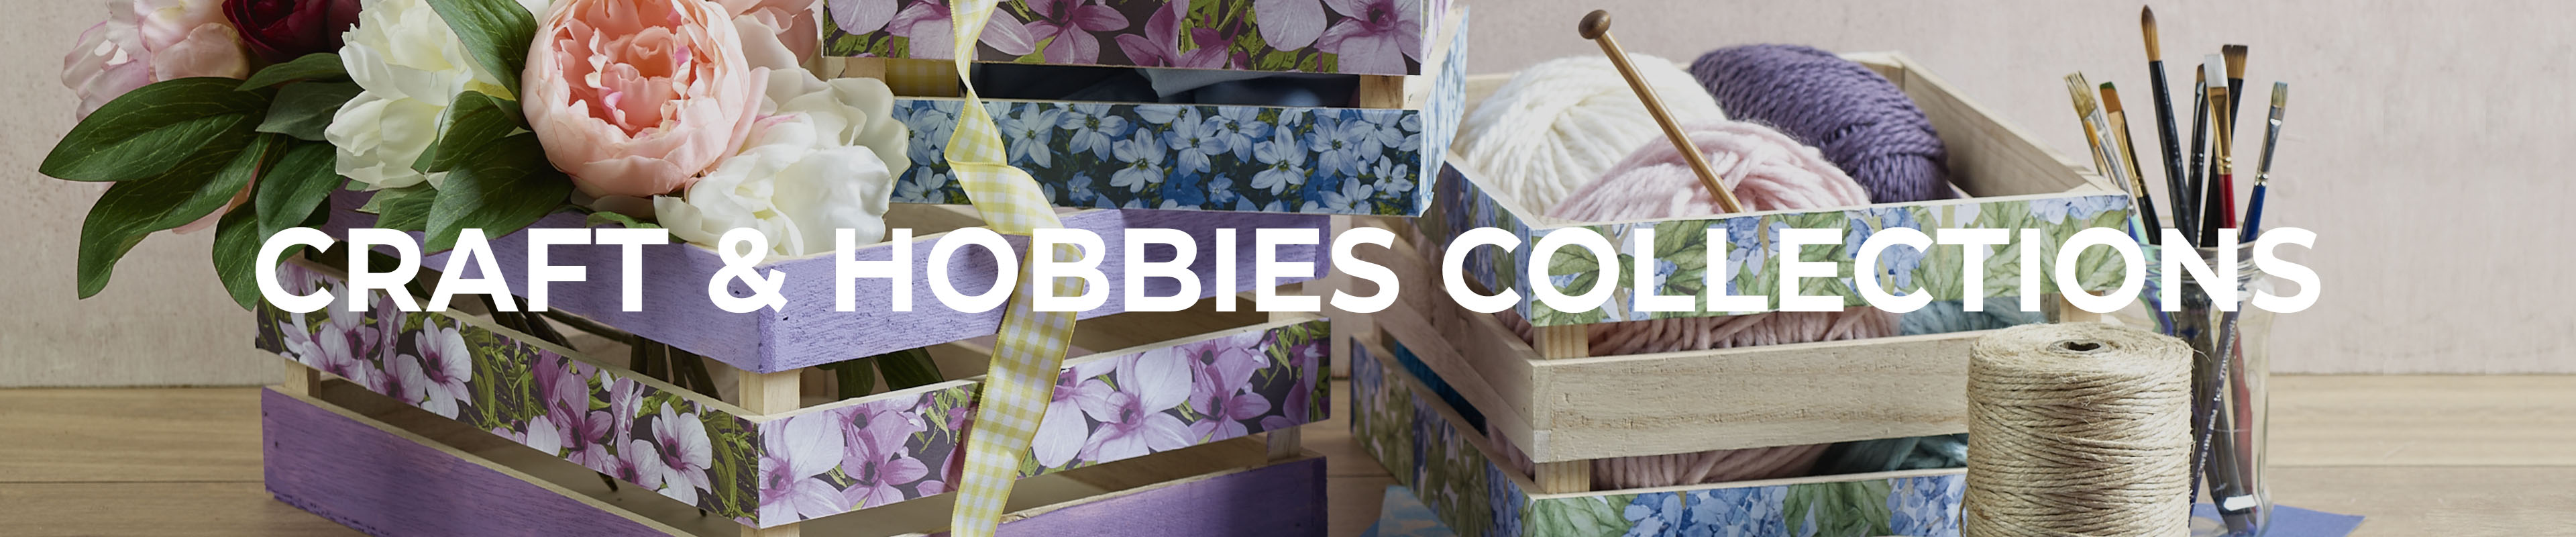 Shop Our Craft & Hobbies Collections